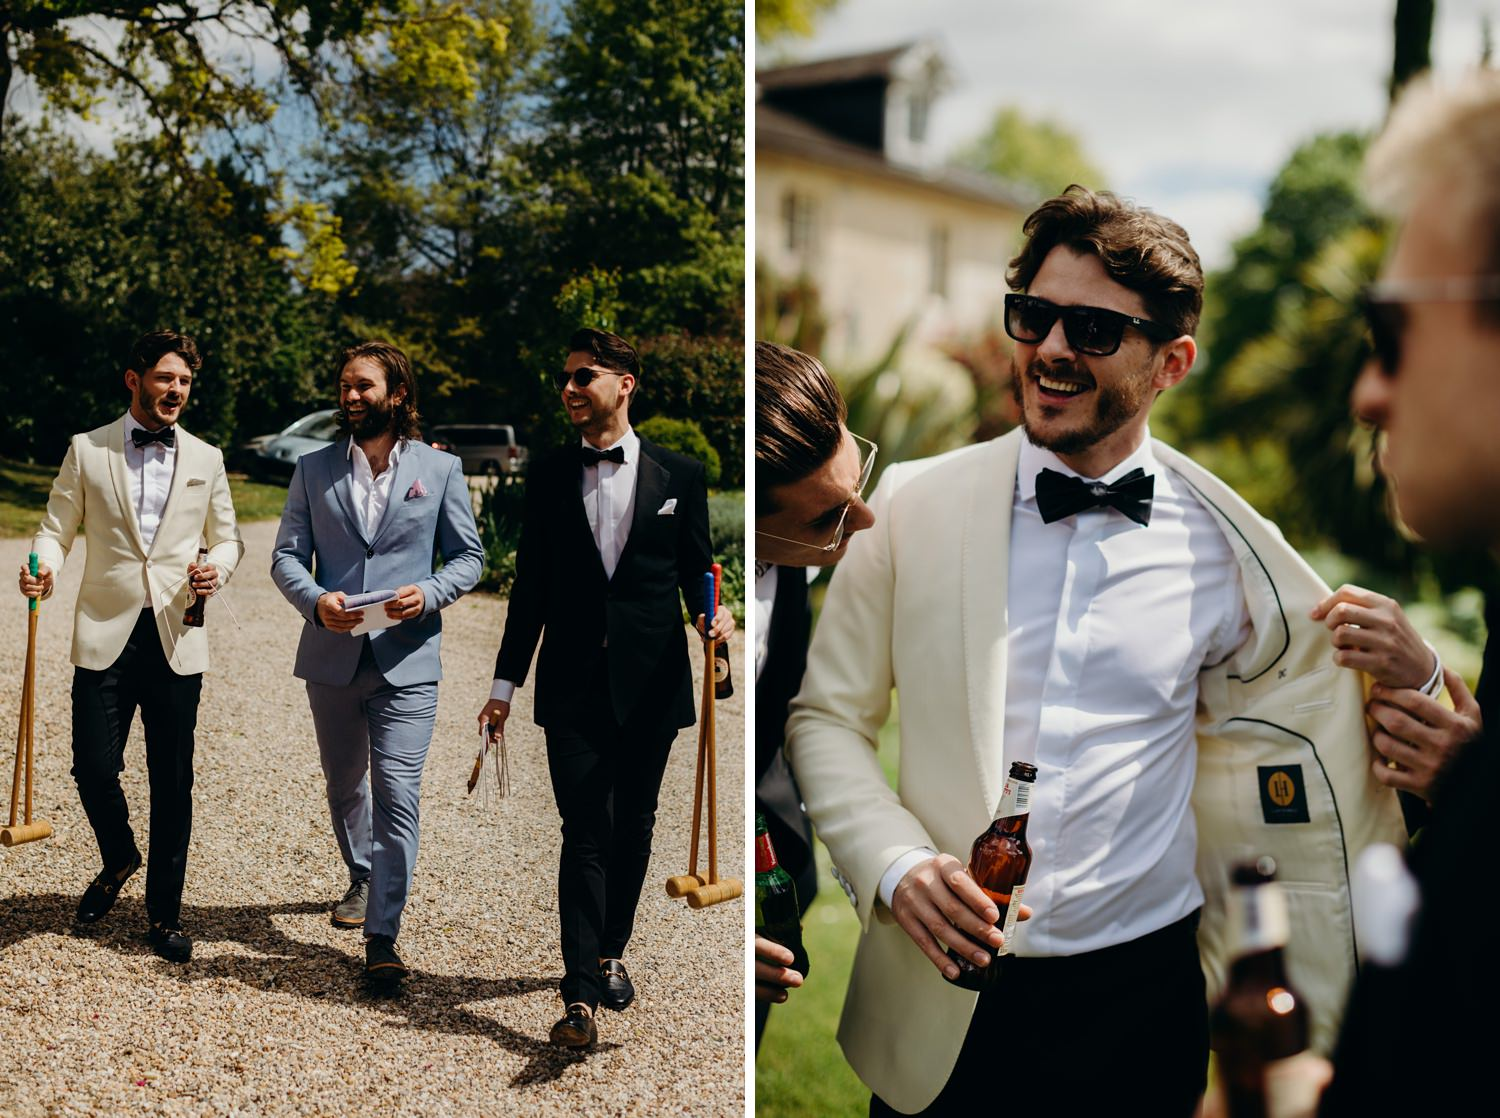 Le mas de montet wedding photographer 018